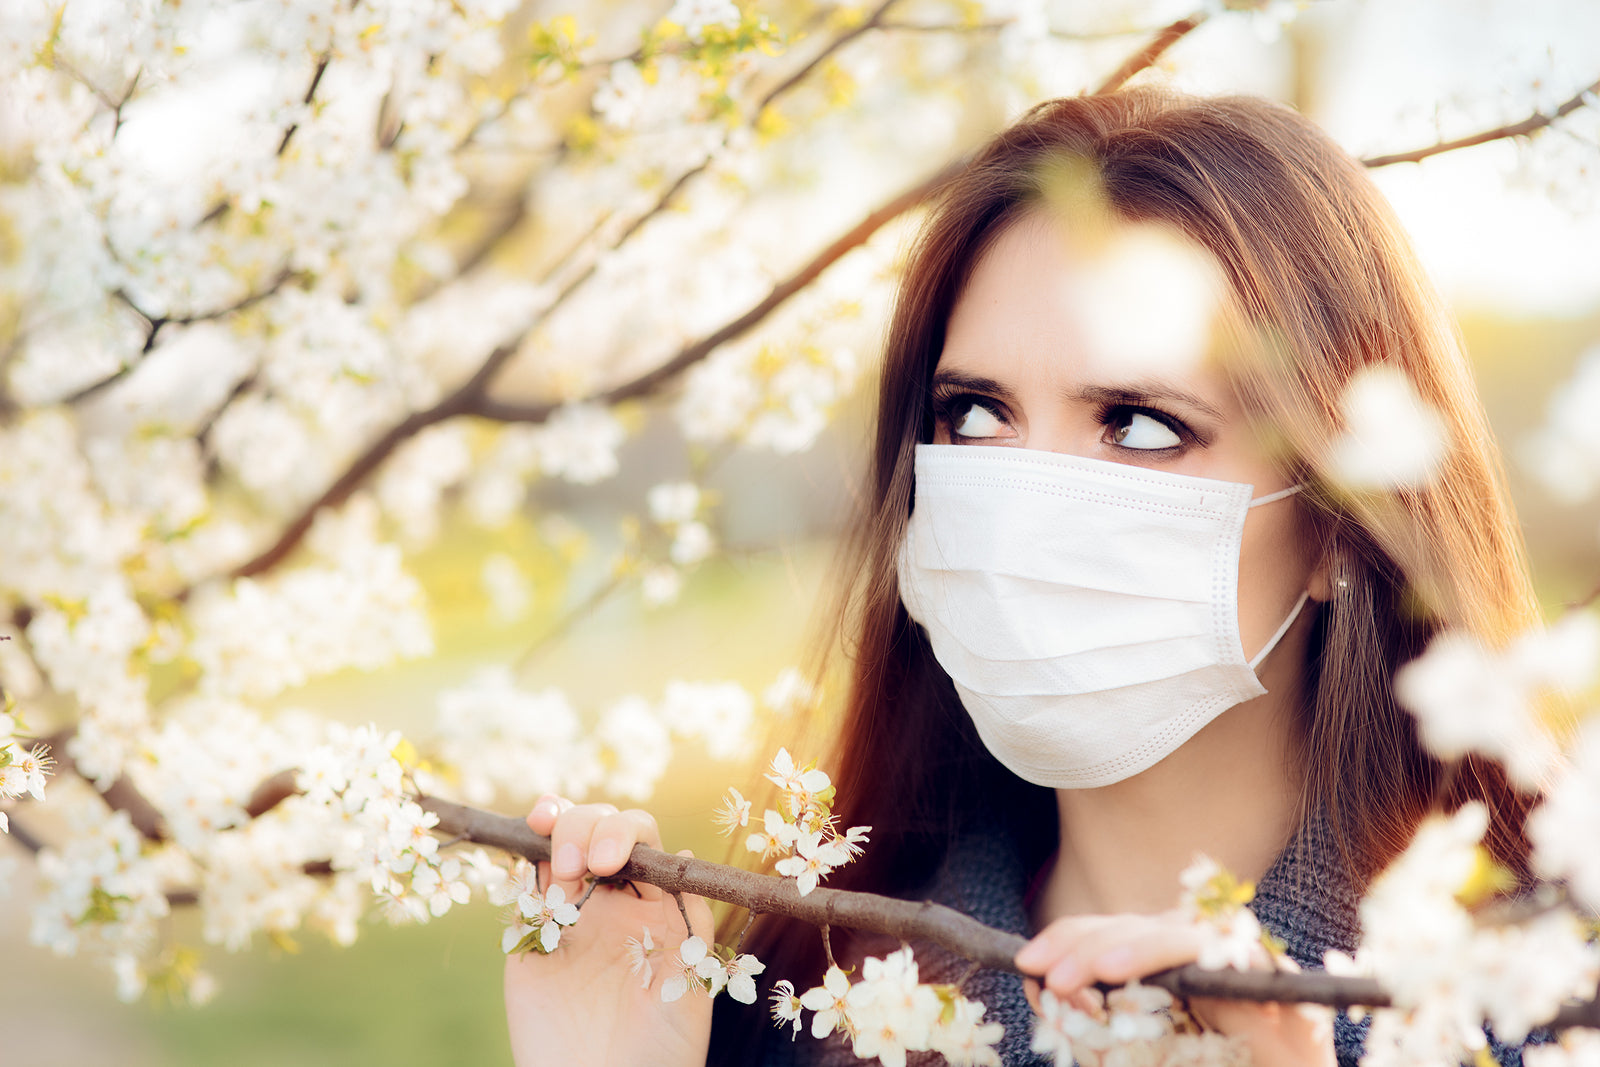 Breathe Easy this Spring with these 5 Natural Allergy Reliefs